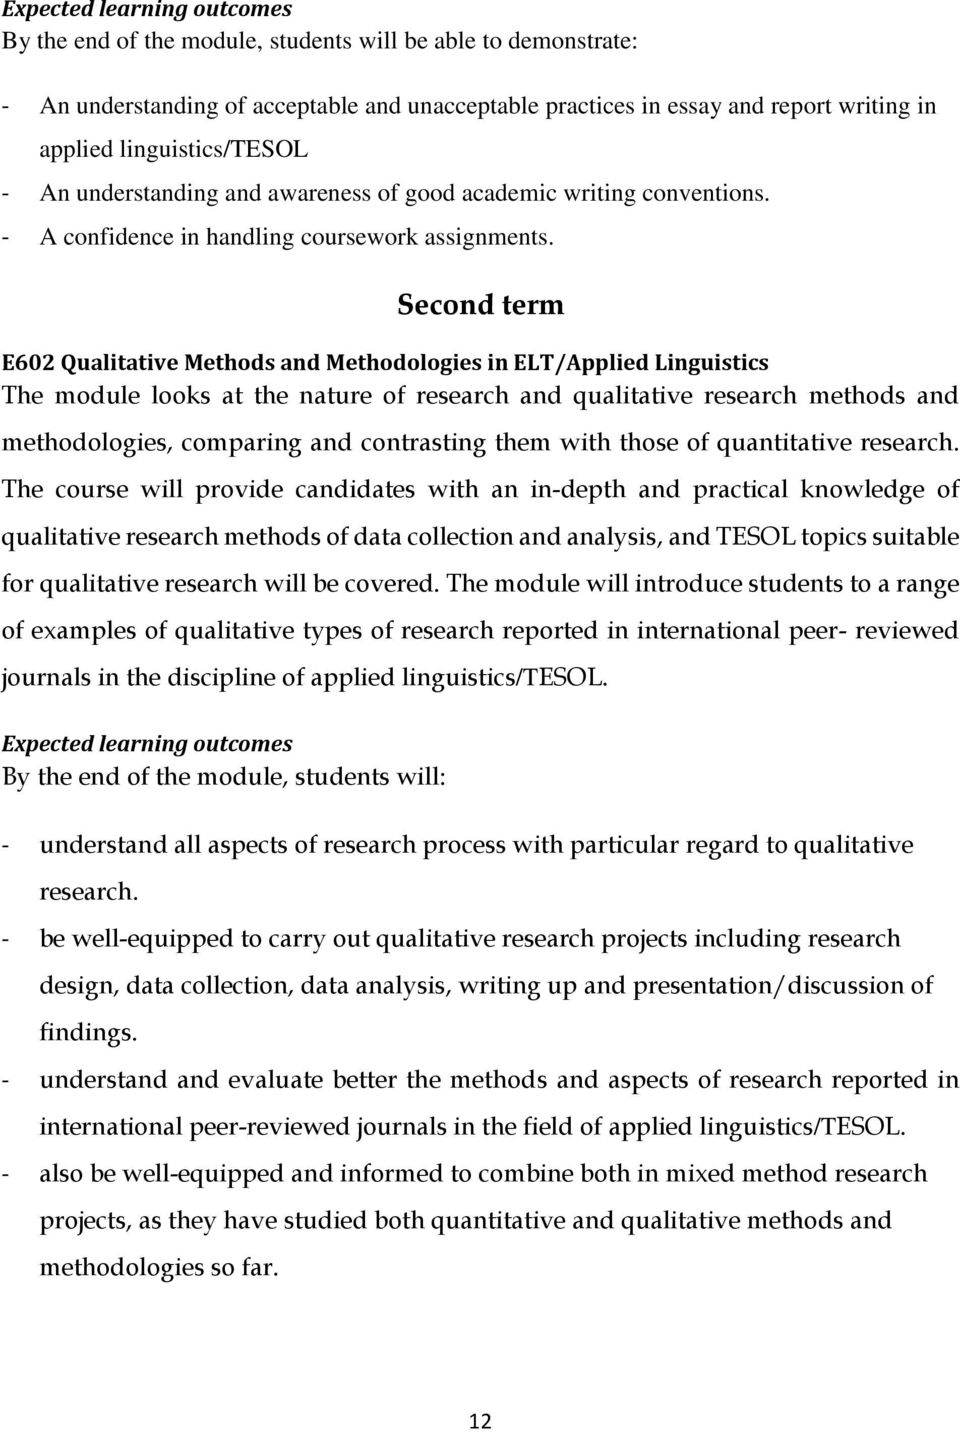 Second term E602 Qualitative Methods and Methodologies in ELT/Applied Linguistics The module looks at the nature of research and qualitative research methods and methodologies, comparing and